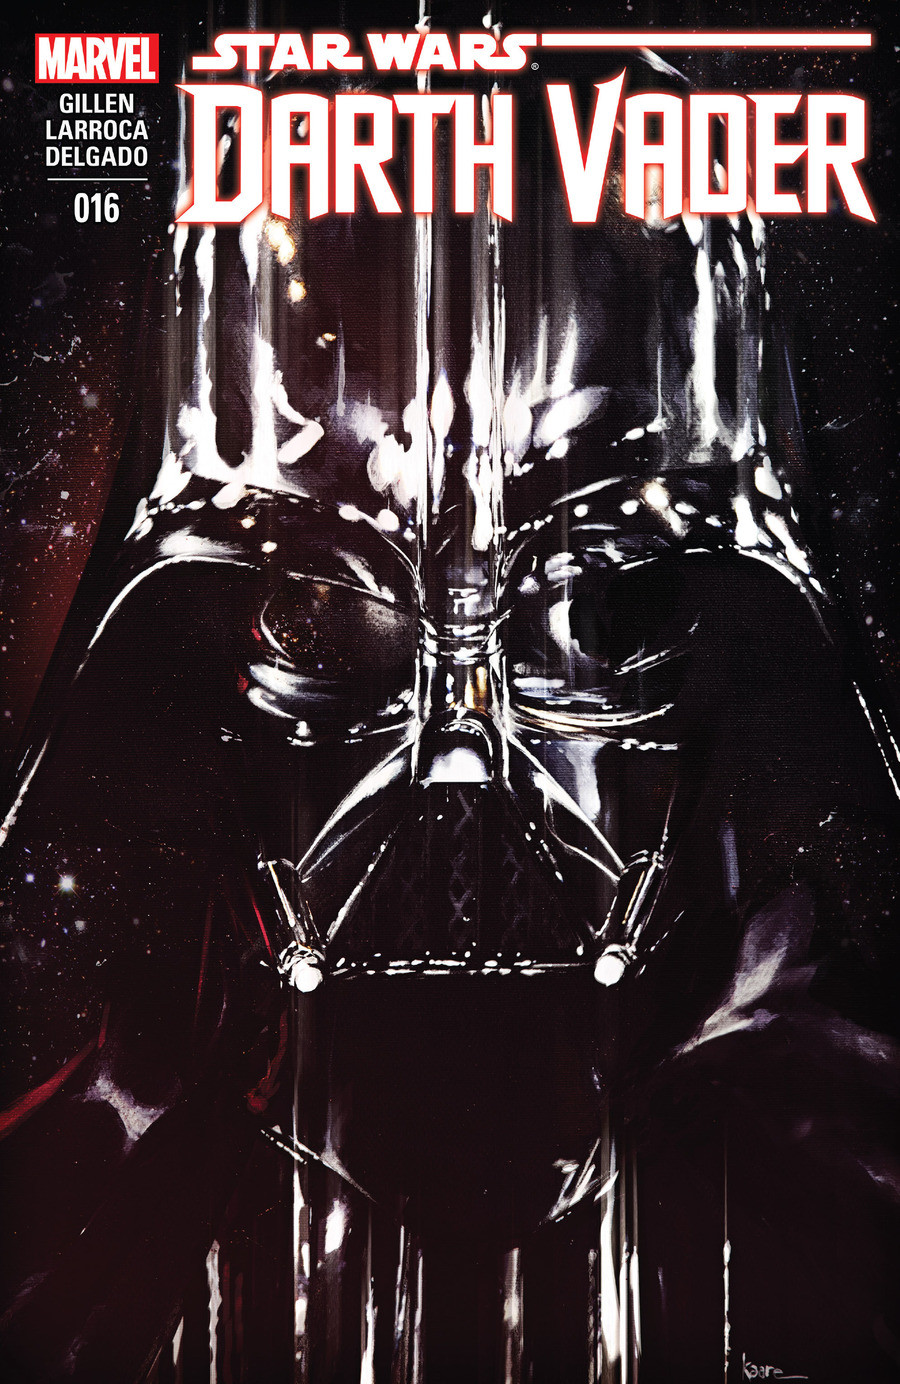 Star Wars Darth Vader issue 16. The start of a new arc. Click the links for the first 3 issues of this comic, and the mentions list mention history for the rest